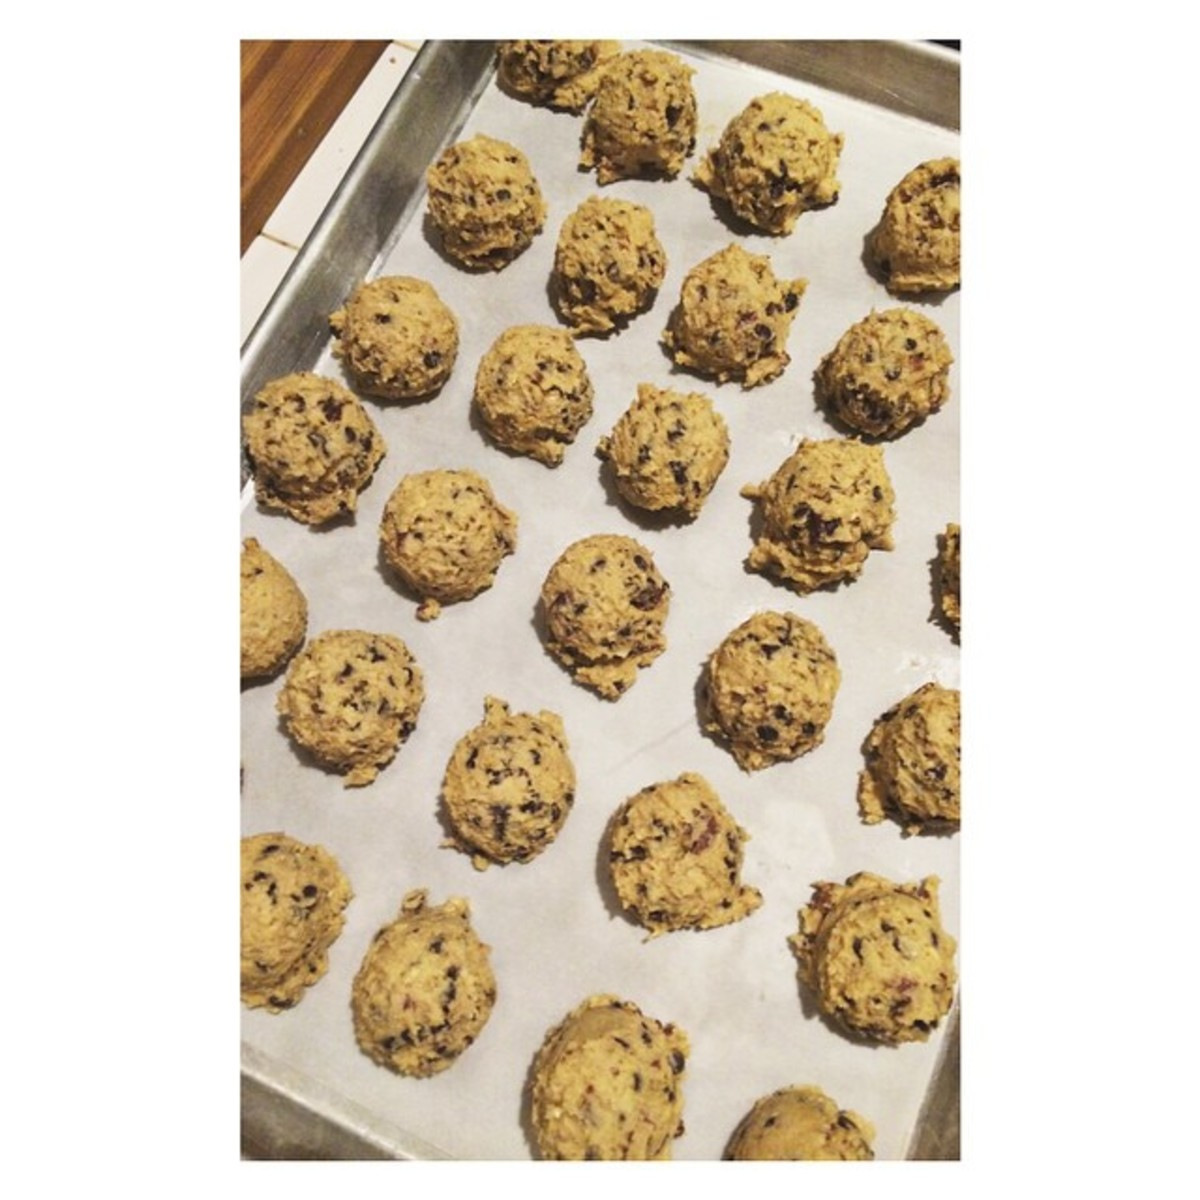 Always place cookies on parchment paper to avoid burnt cookies.